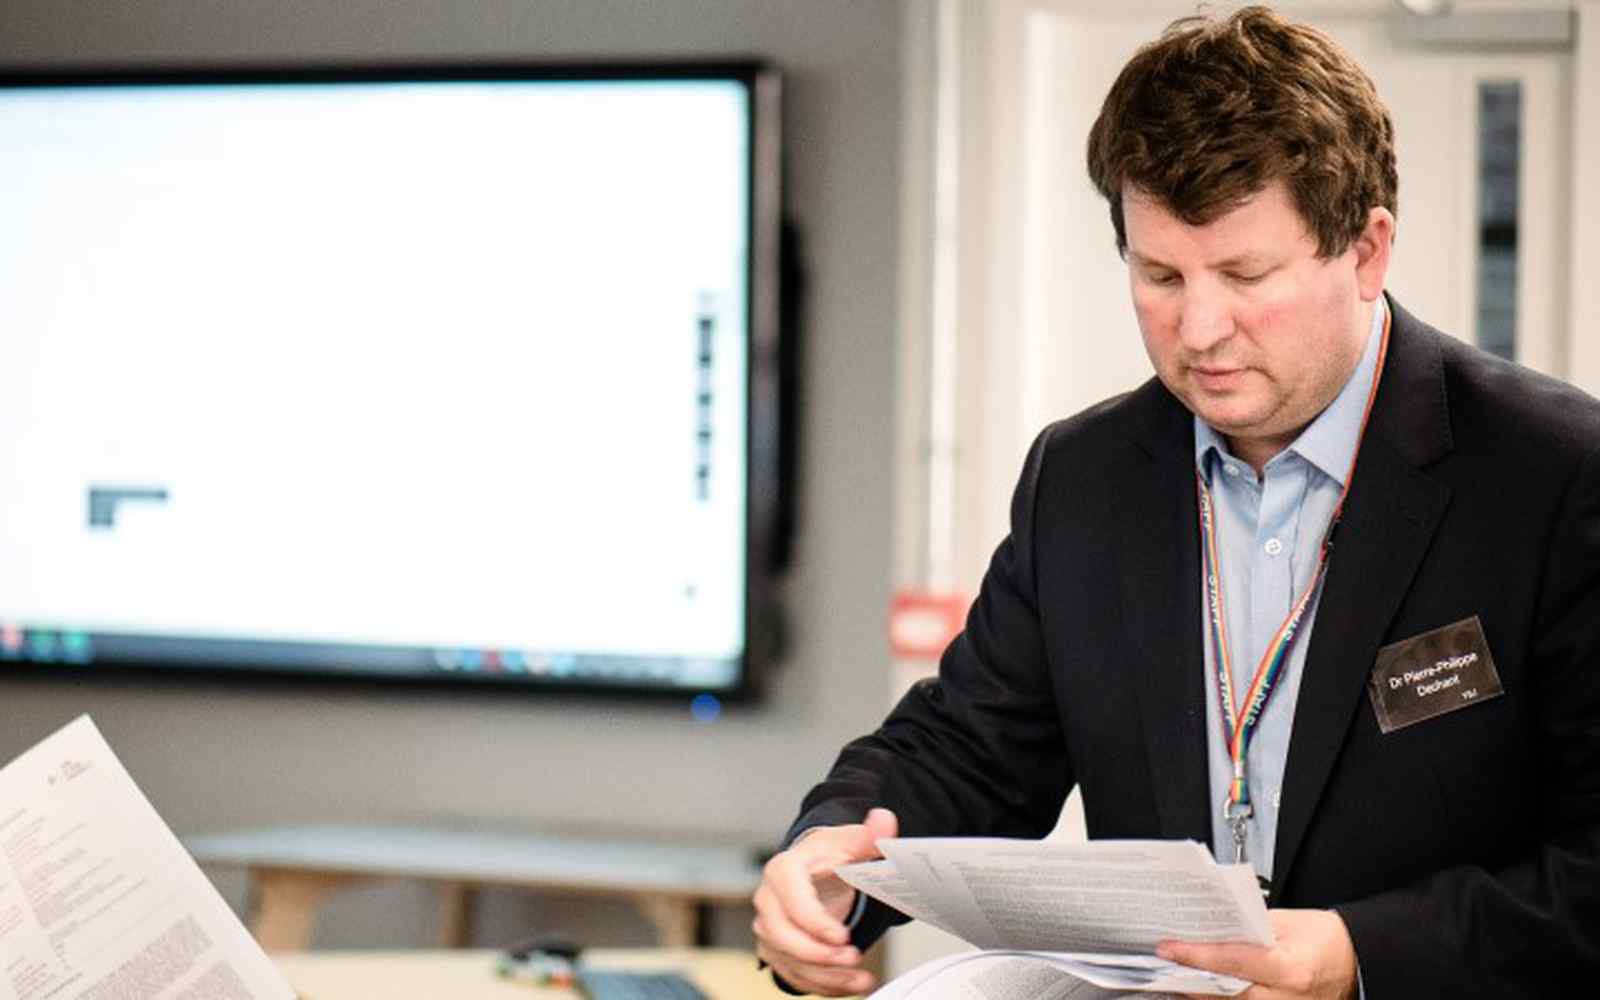 A smartly dressed man working in front of a large computer screen